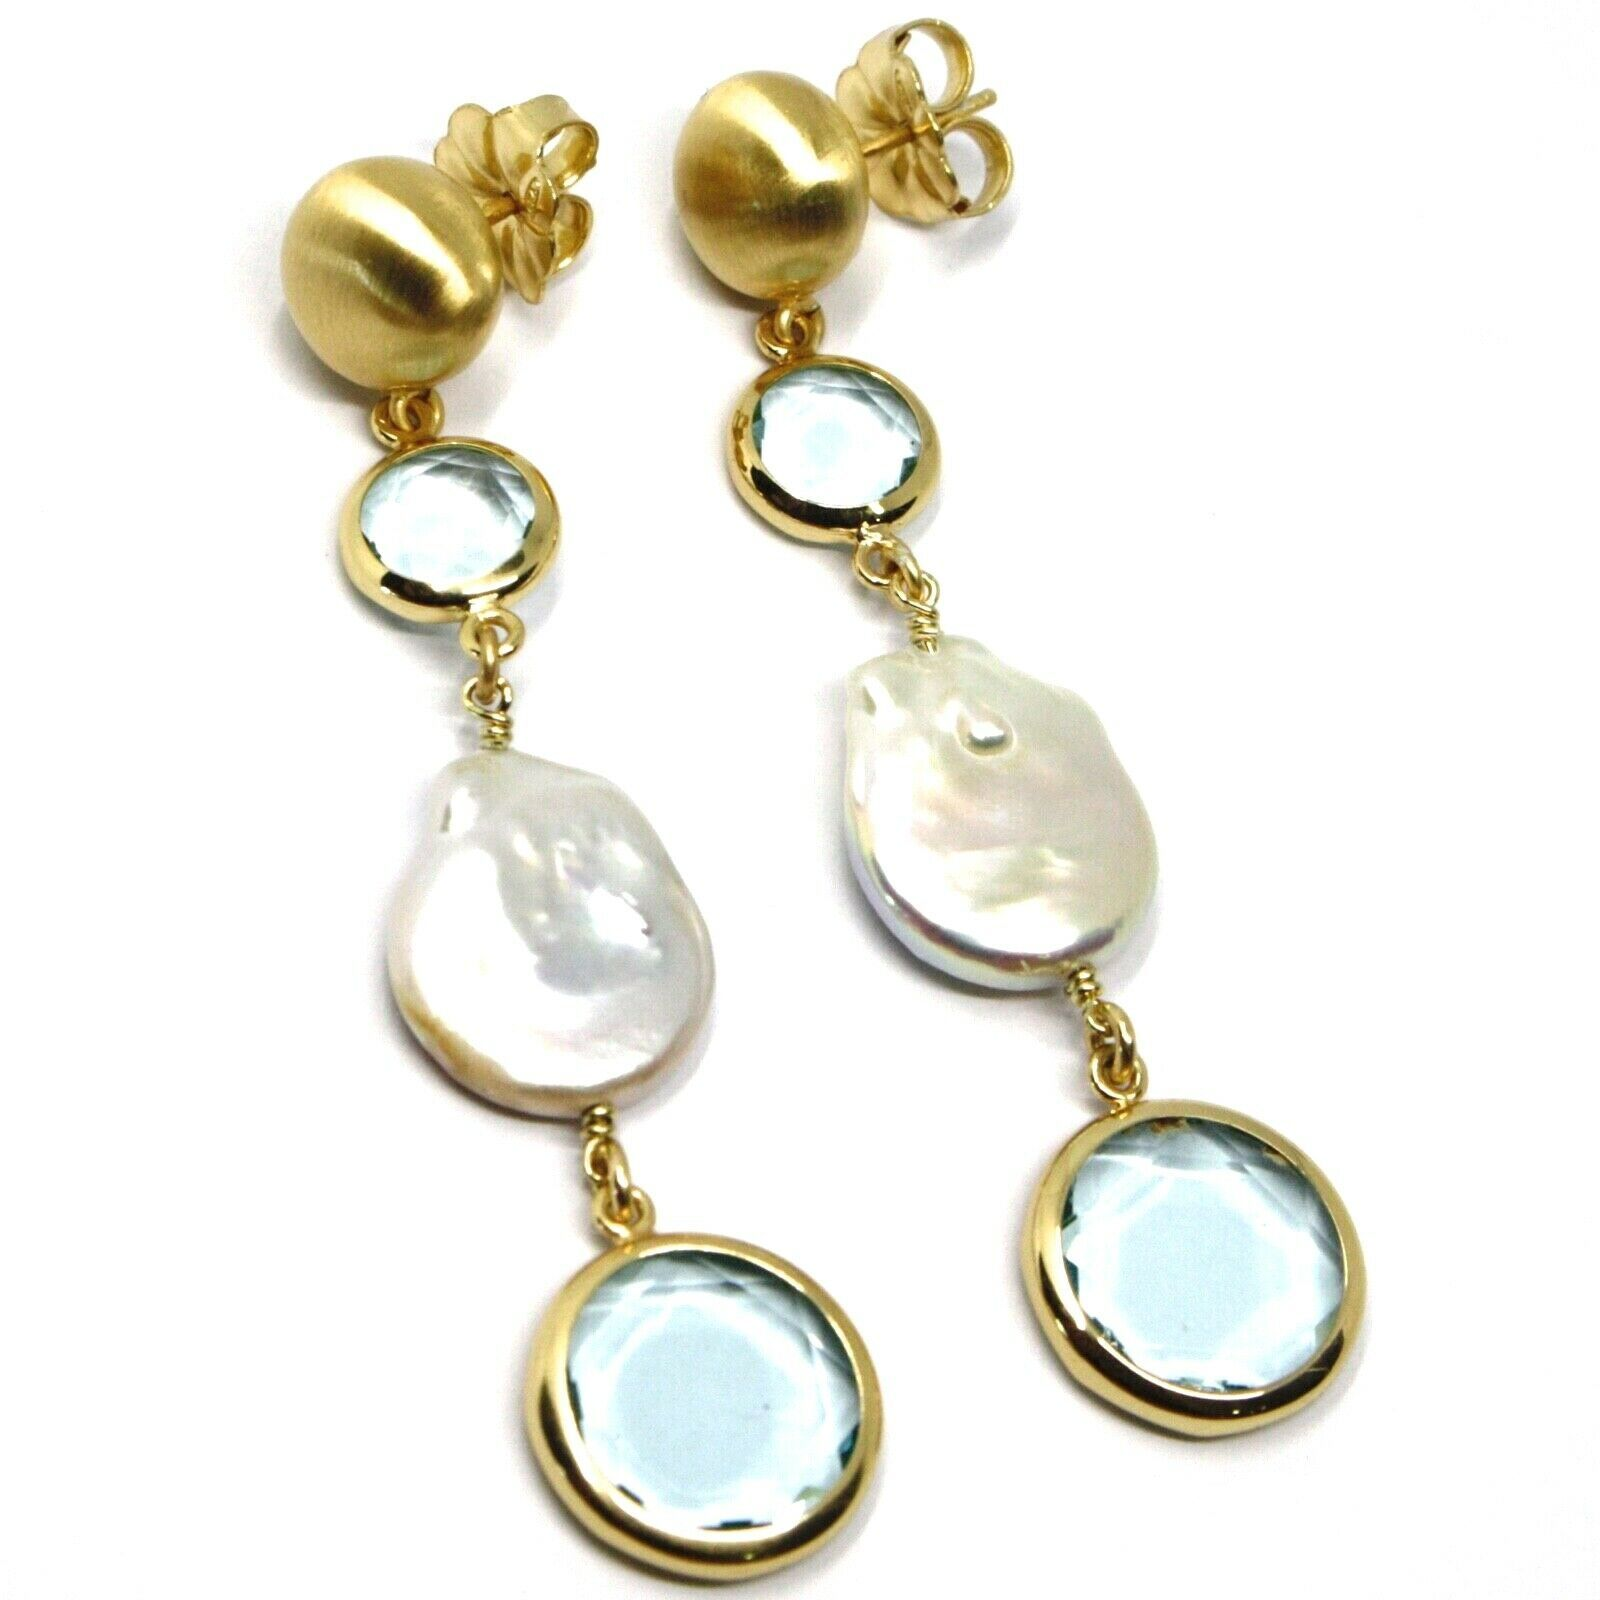 925 STERLING SILVER BIG PENDANT YELLOW EARRINGS 7.7cm, NUGGET, GLASS PASTE PEARL